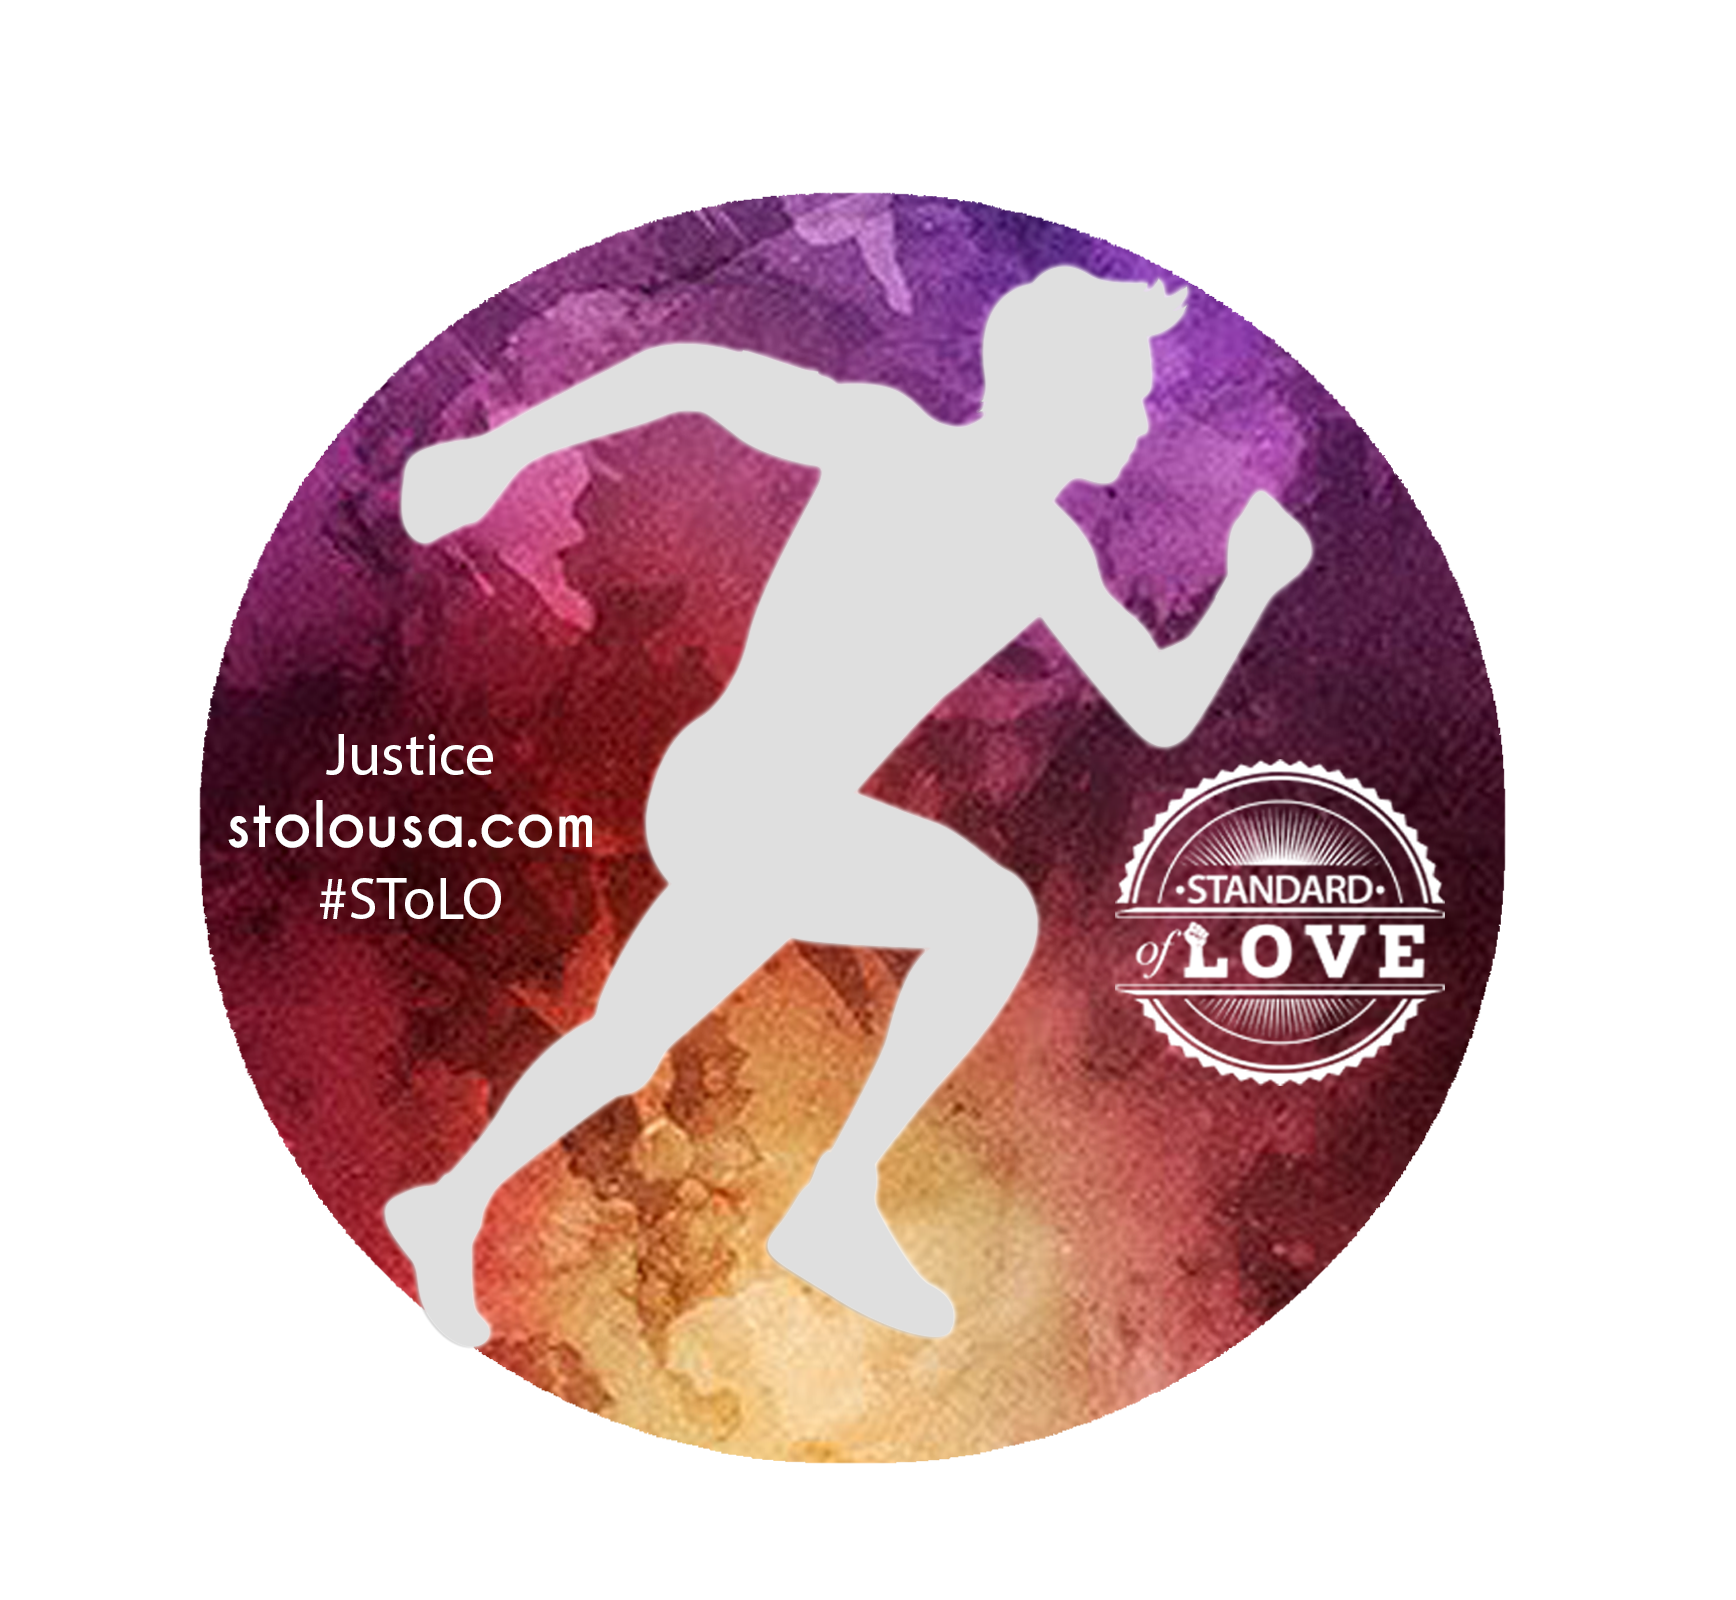 JUSTICE   Standard of LOVE places value in actionable results towards justice towards our future; without repeating the past. The United States' legal system and it's representatives spend more time arguing over basic human rights than focusing on an inspirational future inclusive of all of us.